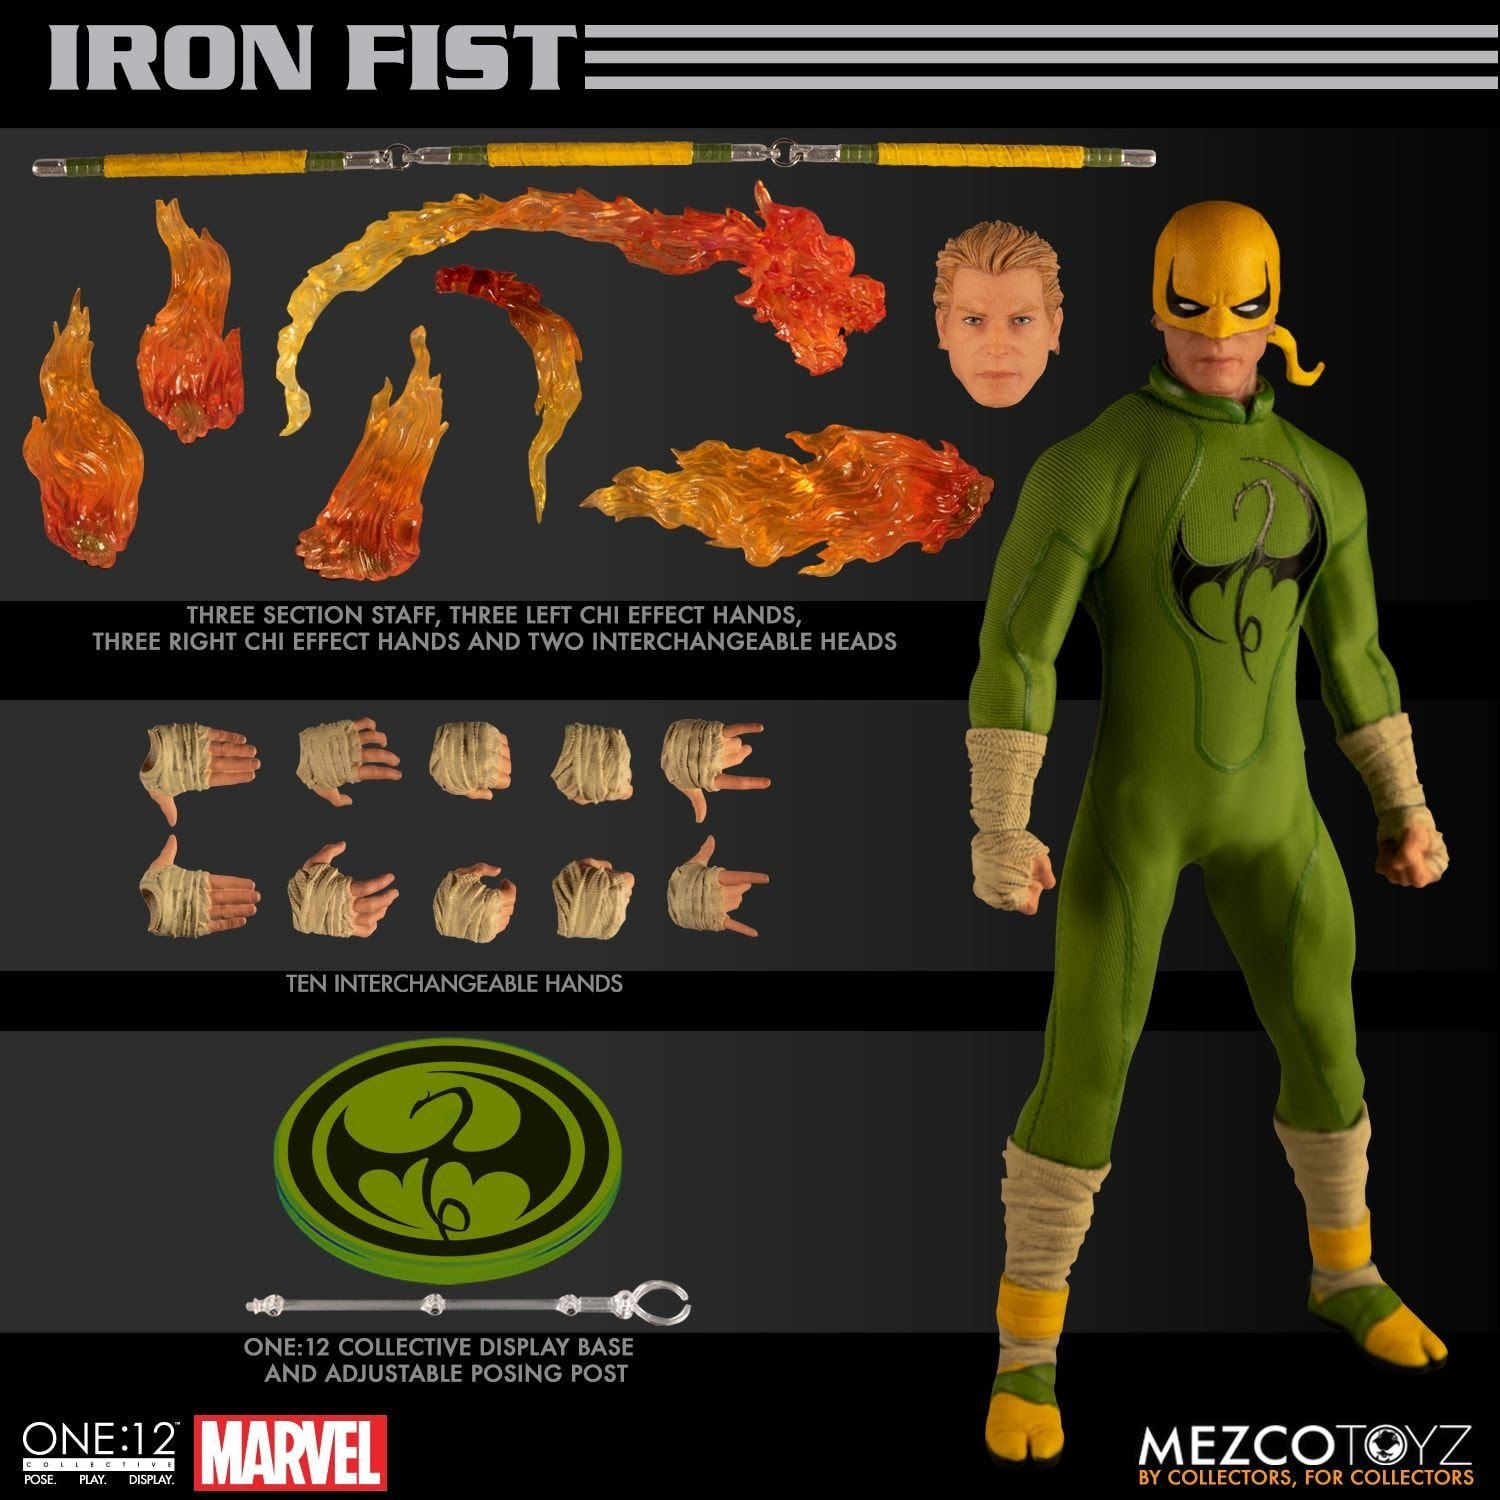 Iron Fist Collective Action Figure by Mezco